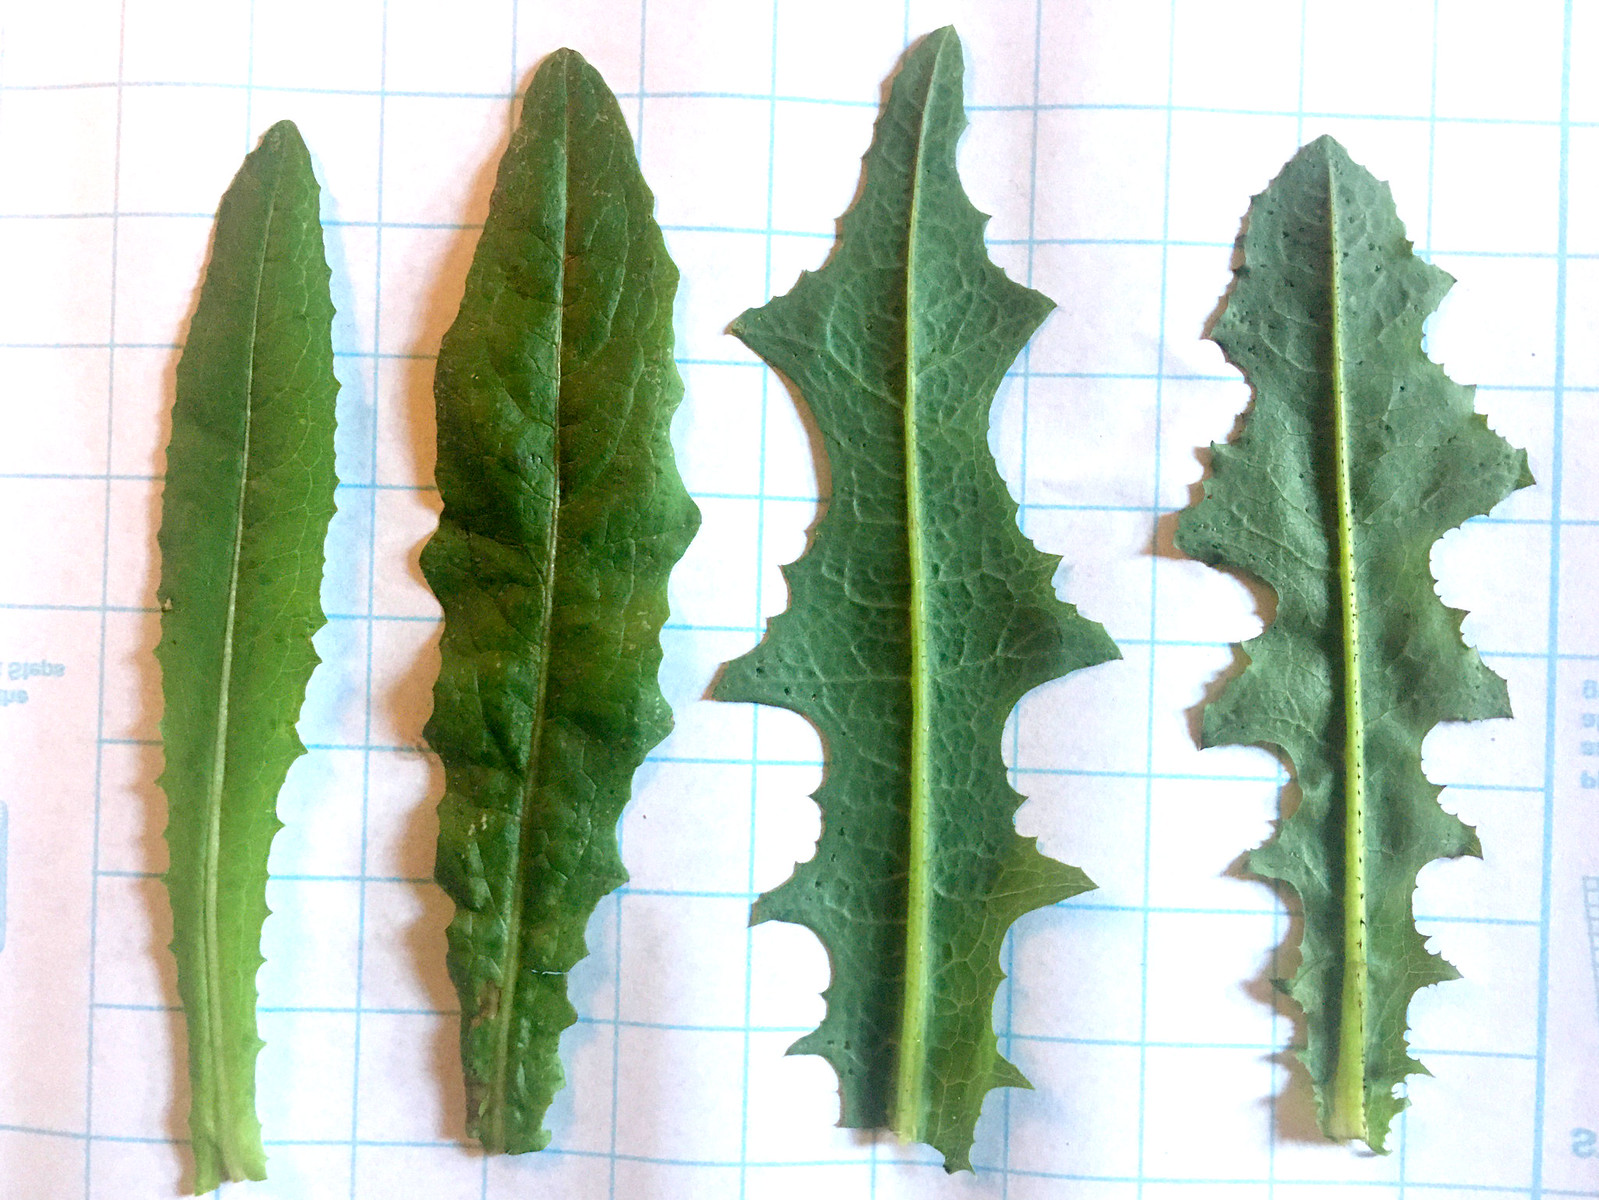 wild lettuce leaves (young, left, to older, right)